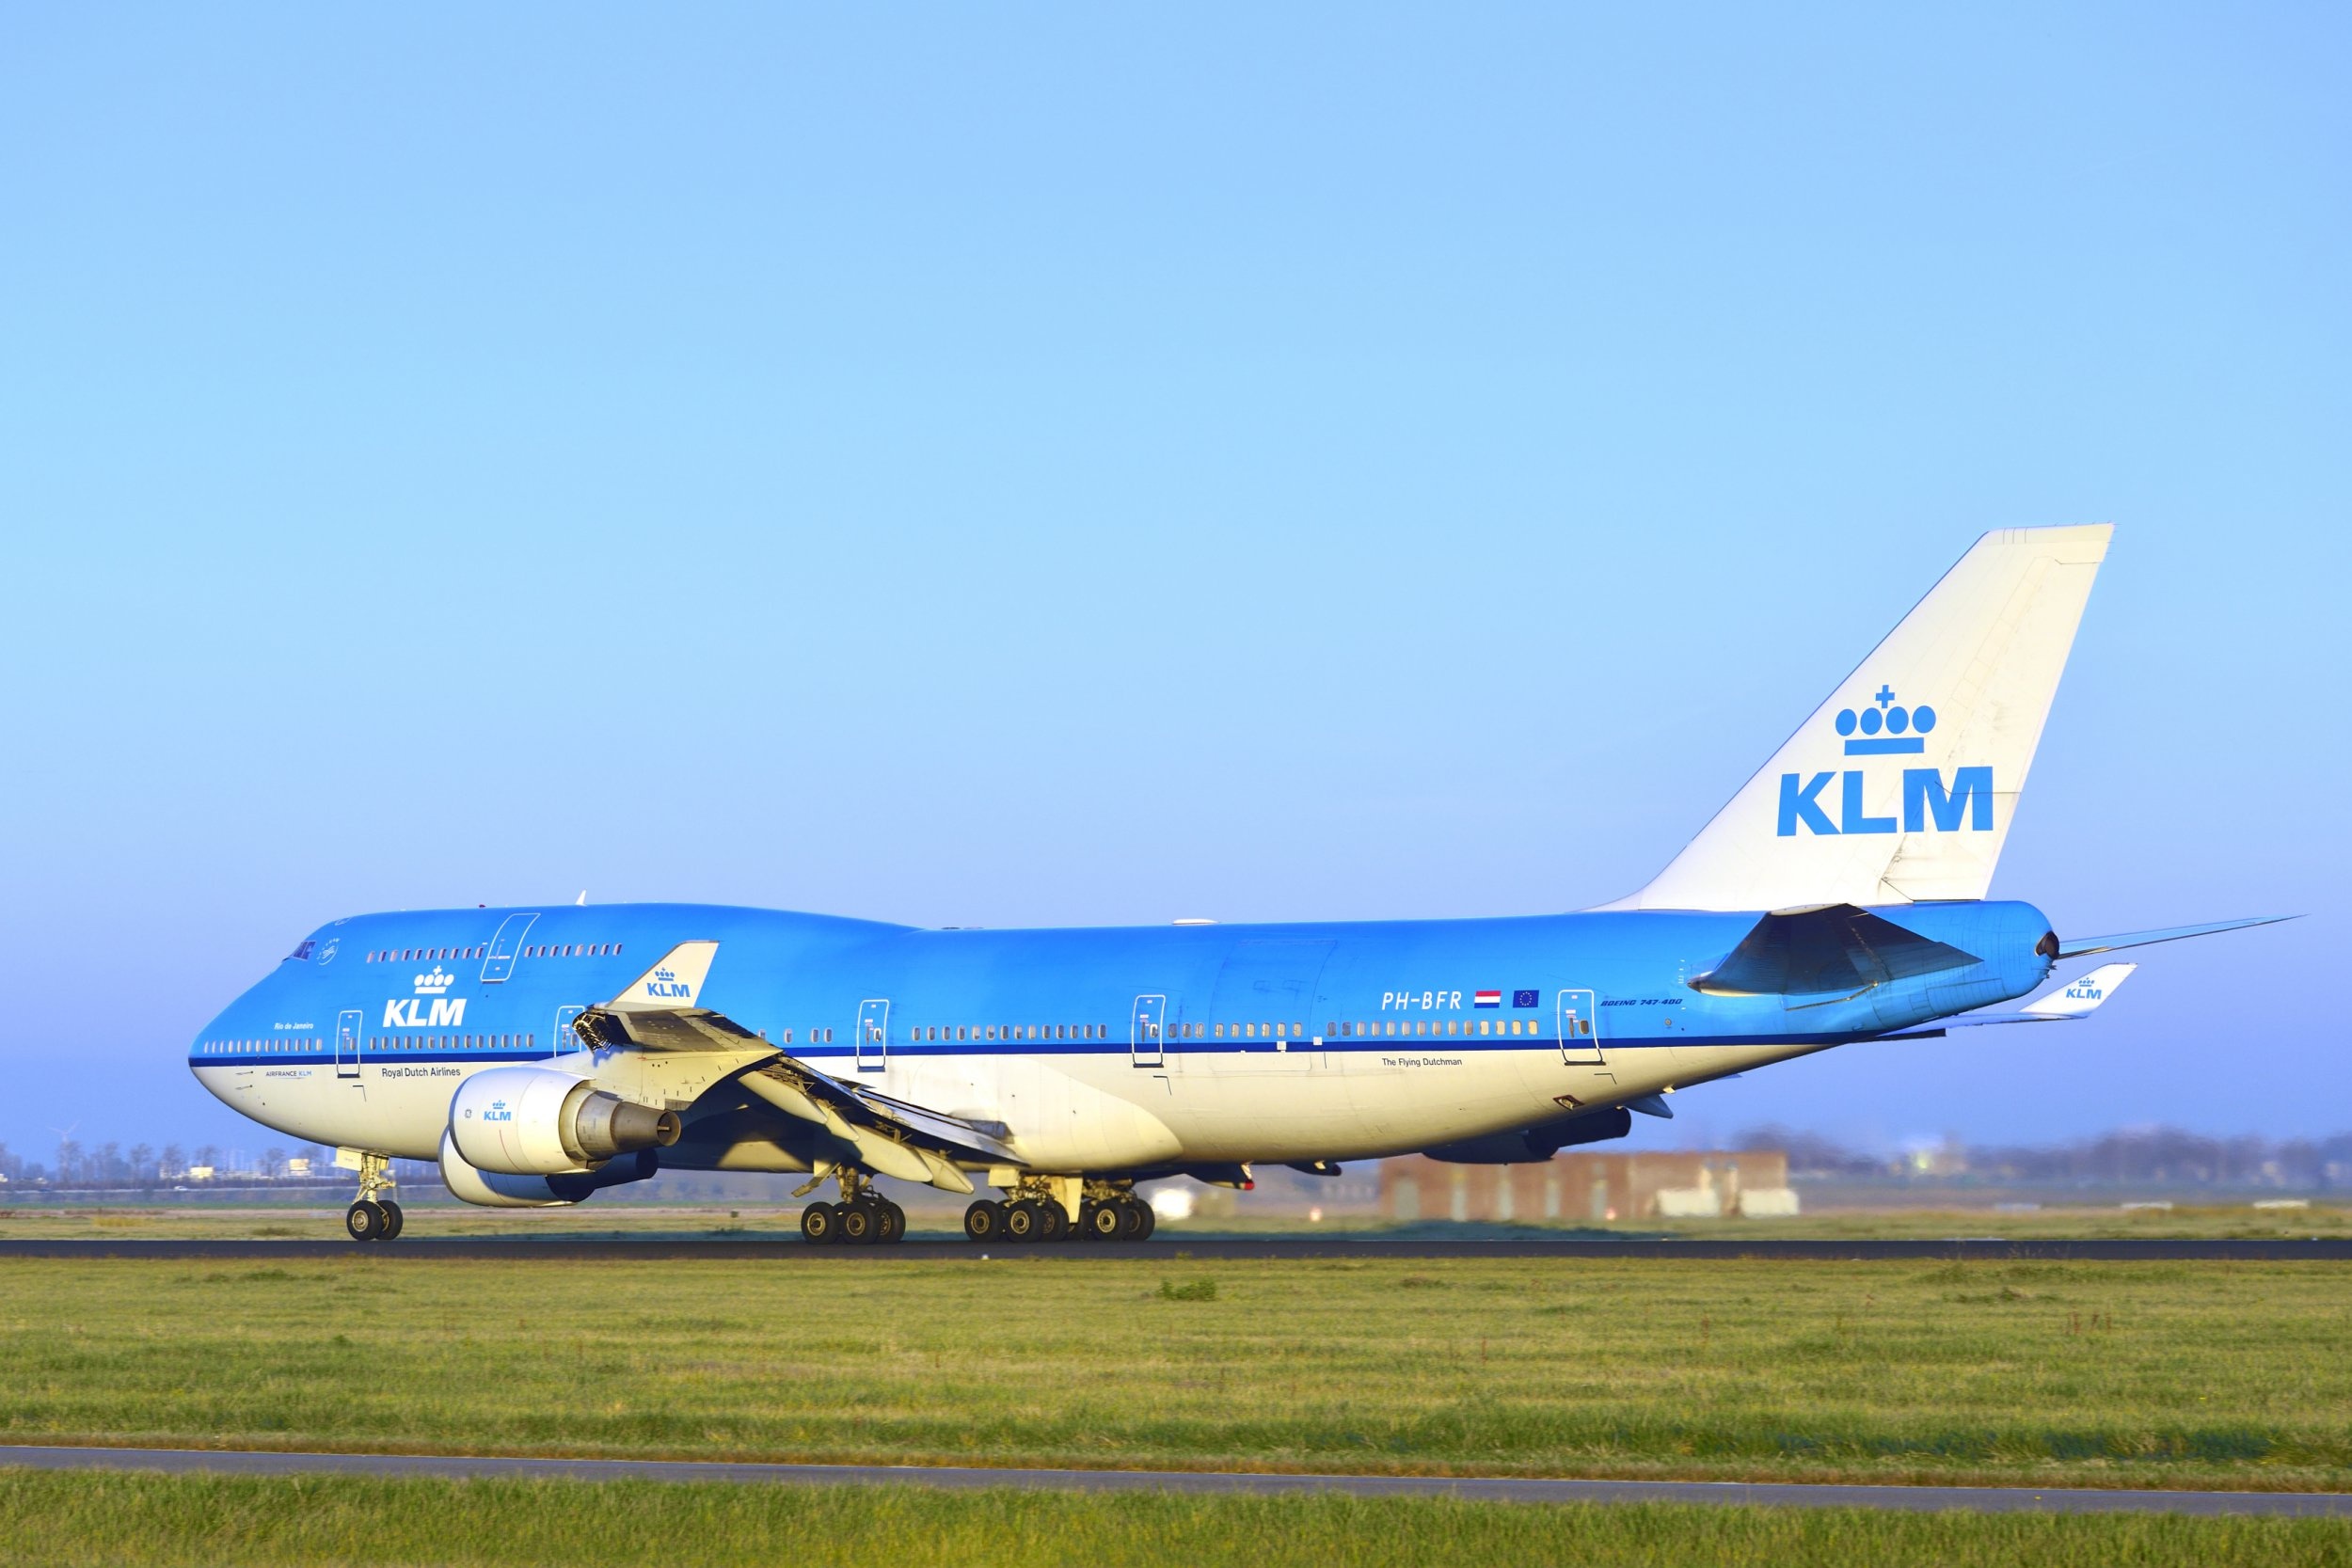 Schiphol, The Netherlands - November 14, 2012: KLM Royal Dutch Airlines Boeing 747-400 taking off from Schiphol Airport in The Netherlands at the end of the day.